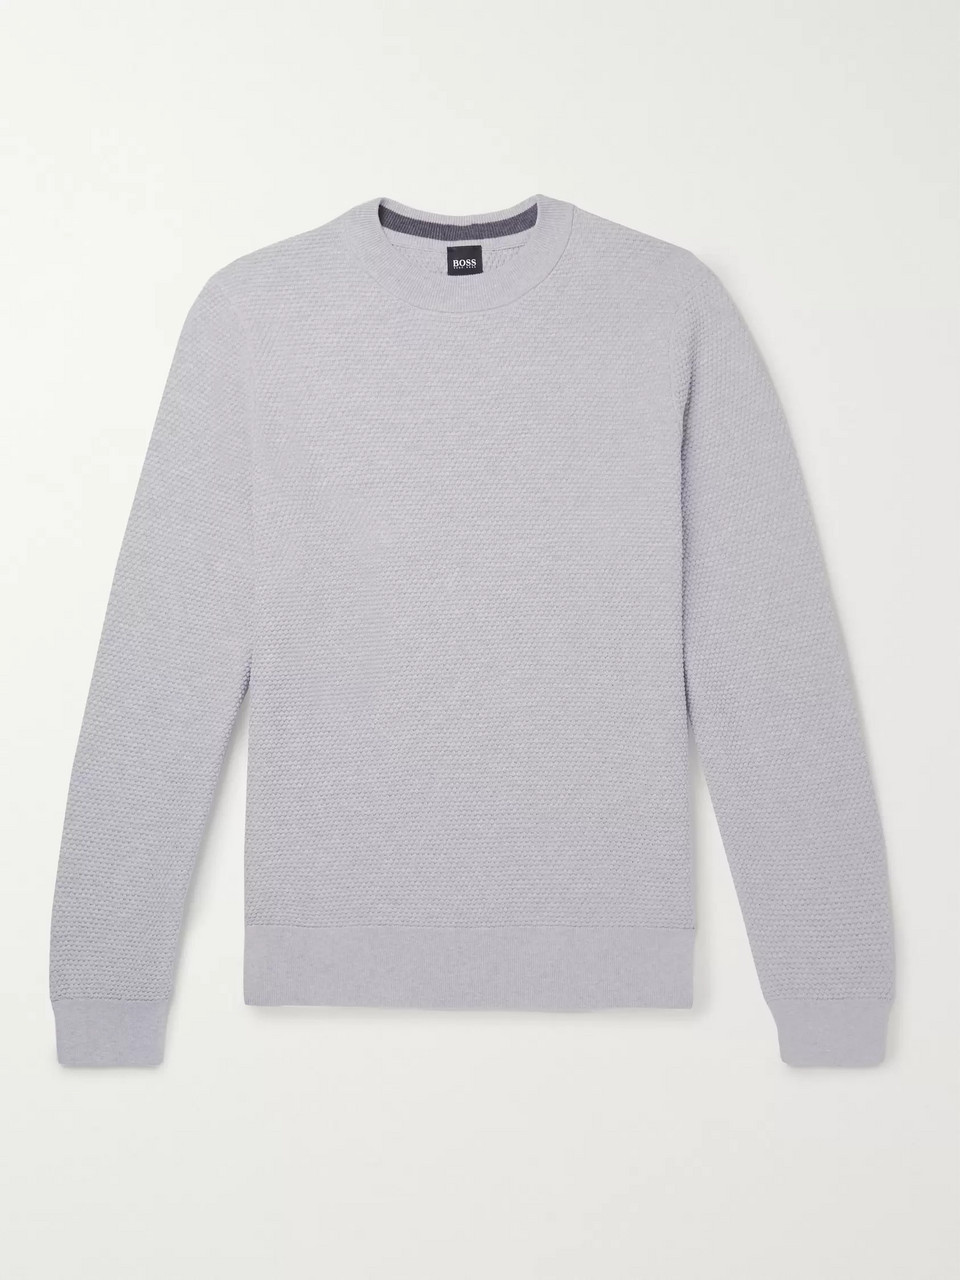 Hugo Boss Textured Pima Cotton Sweater